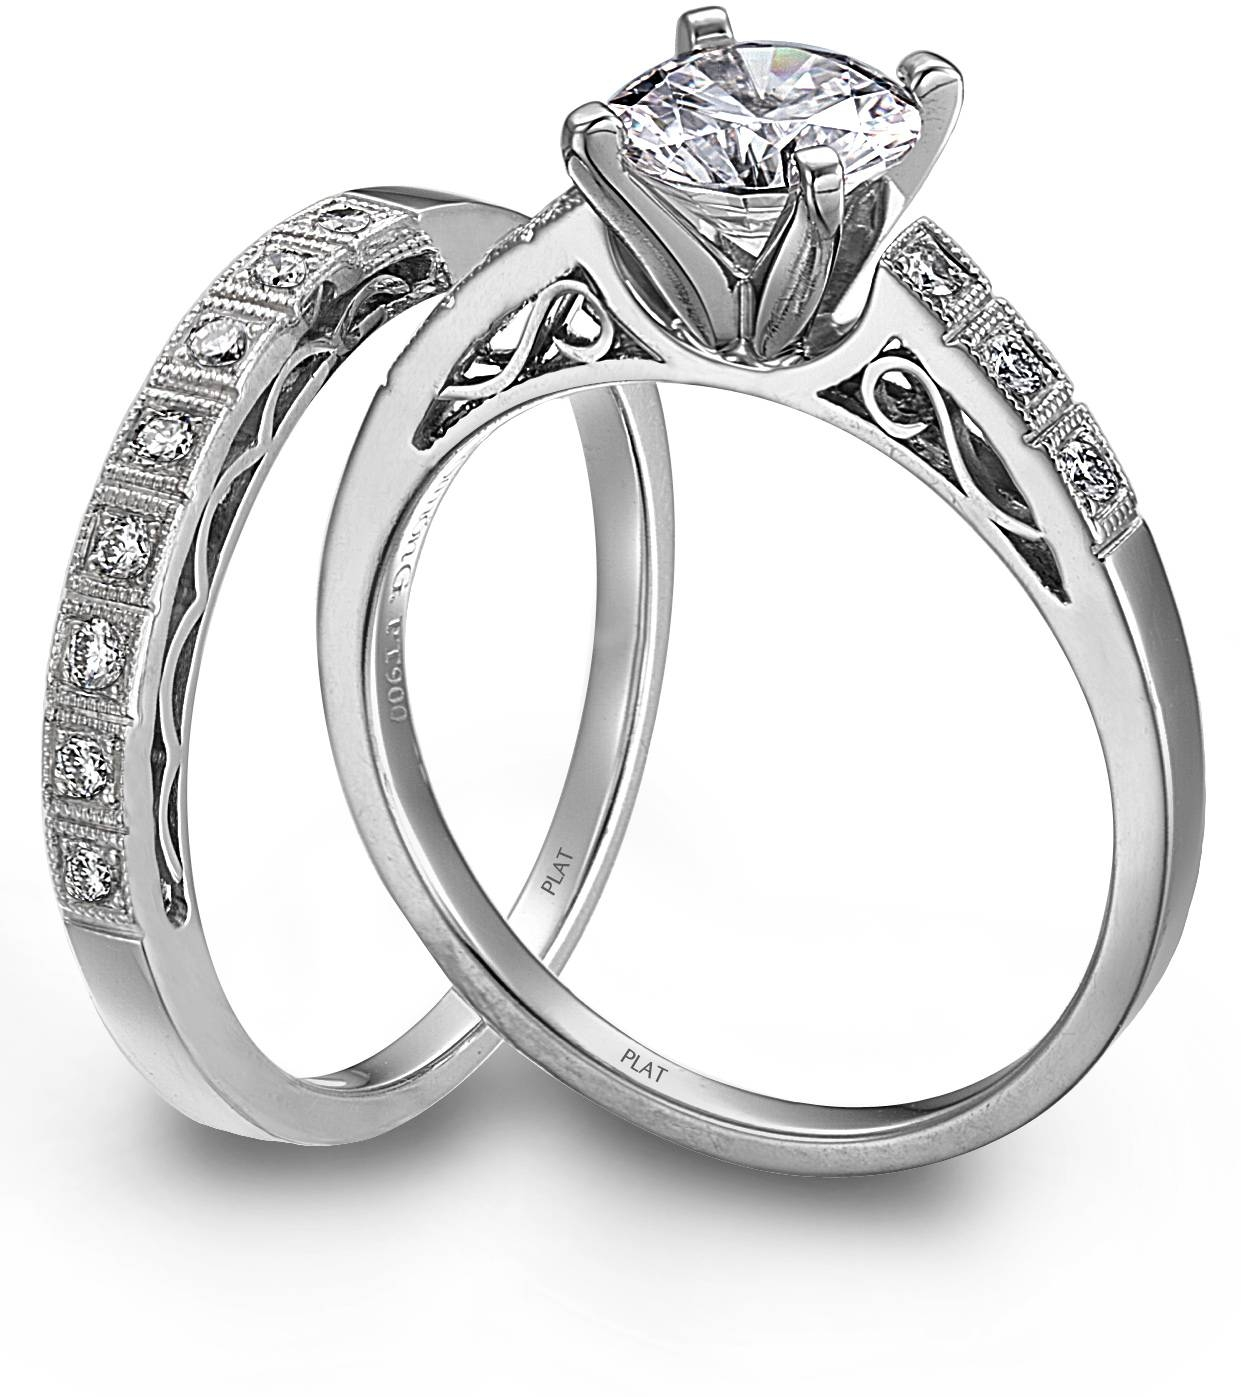 Wedding Rings : Wedding Rings And Engagement Rings Difference What Throughout Wedding Engagement Rings (View 15 of 15)